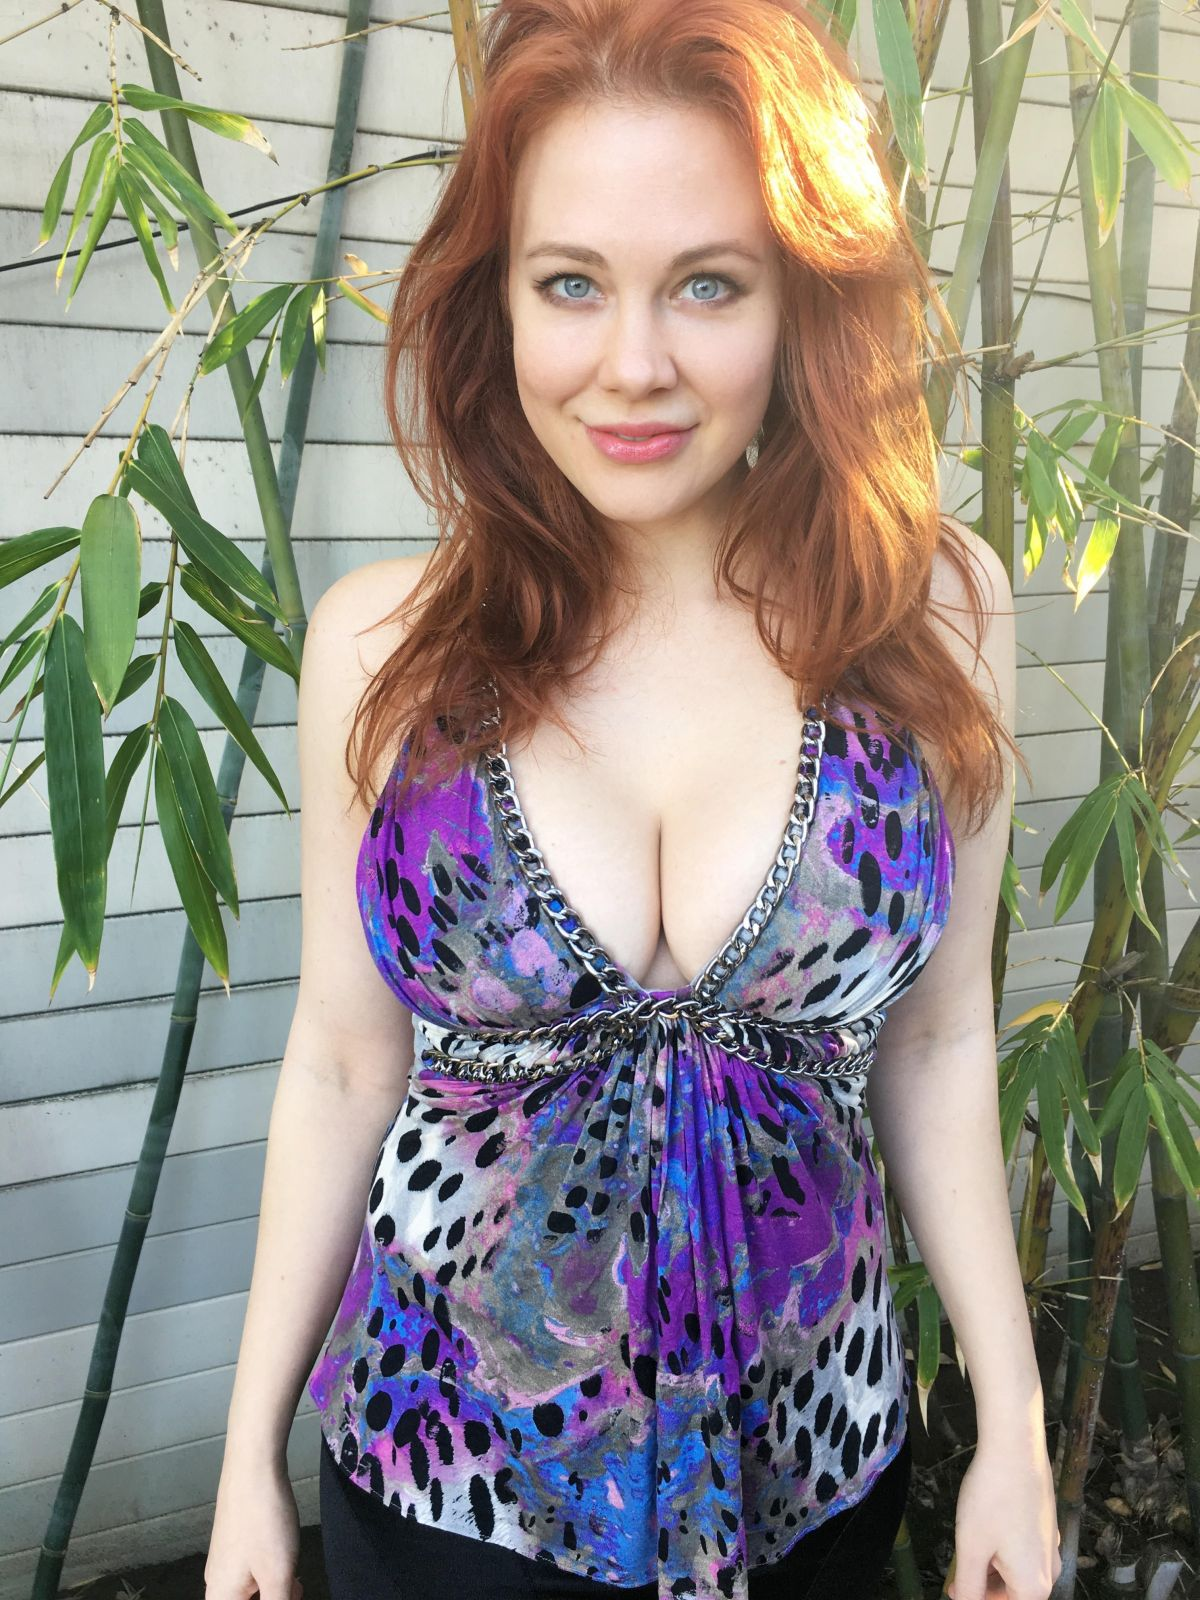 Maitland ward out in marina del rey celebzz celebzz